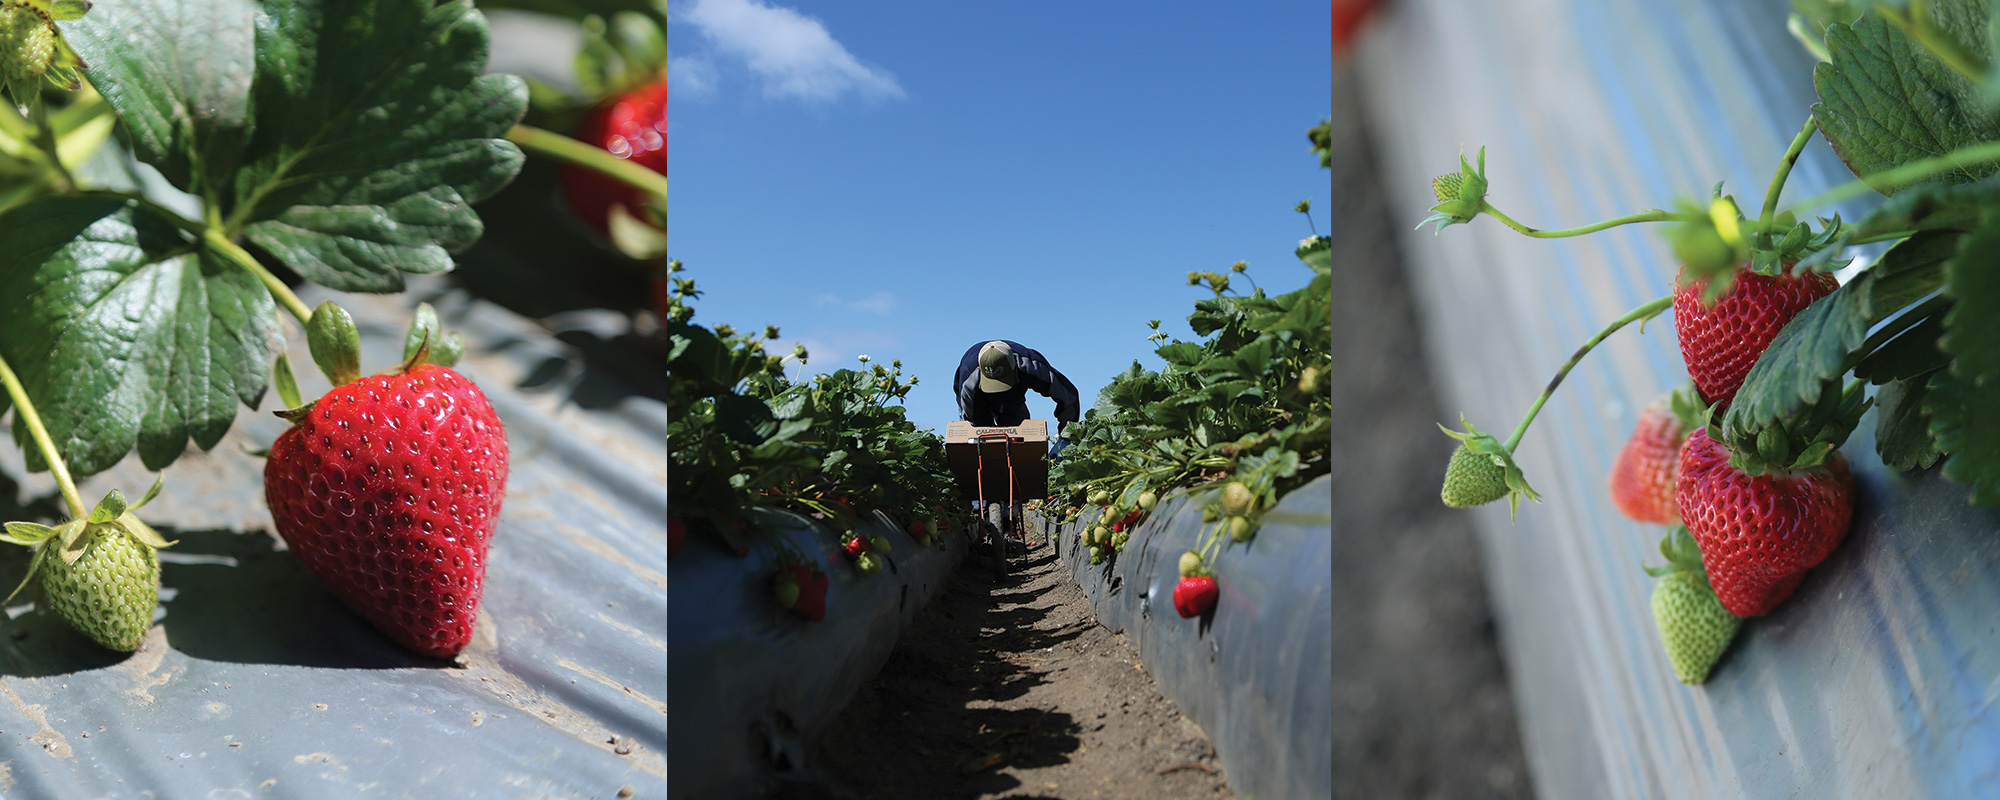 Madison Farms strawberries, ready for harvest in Salinas, California